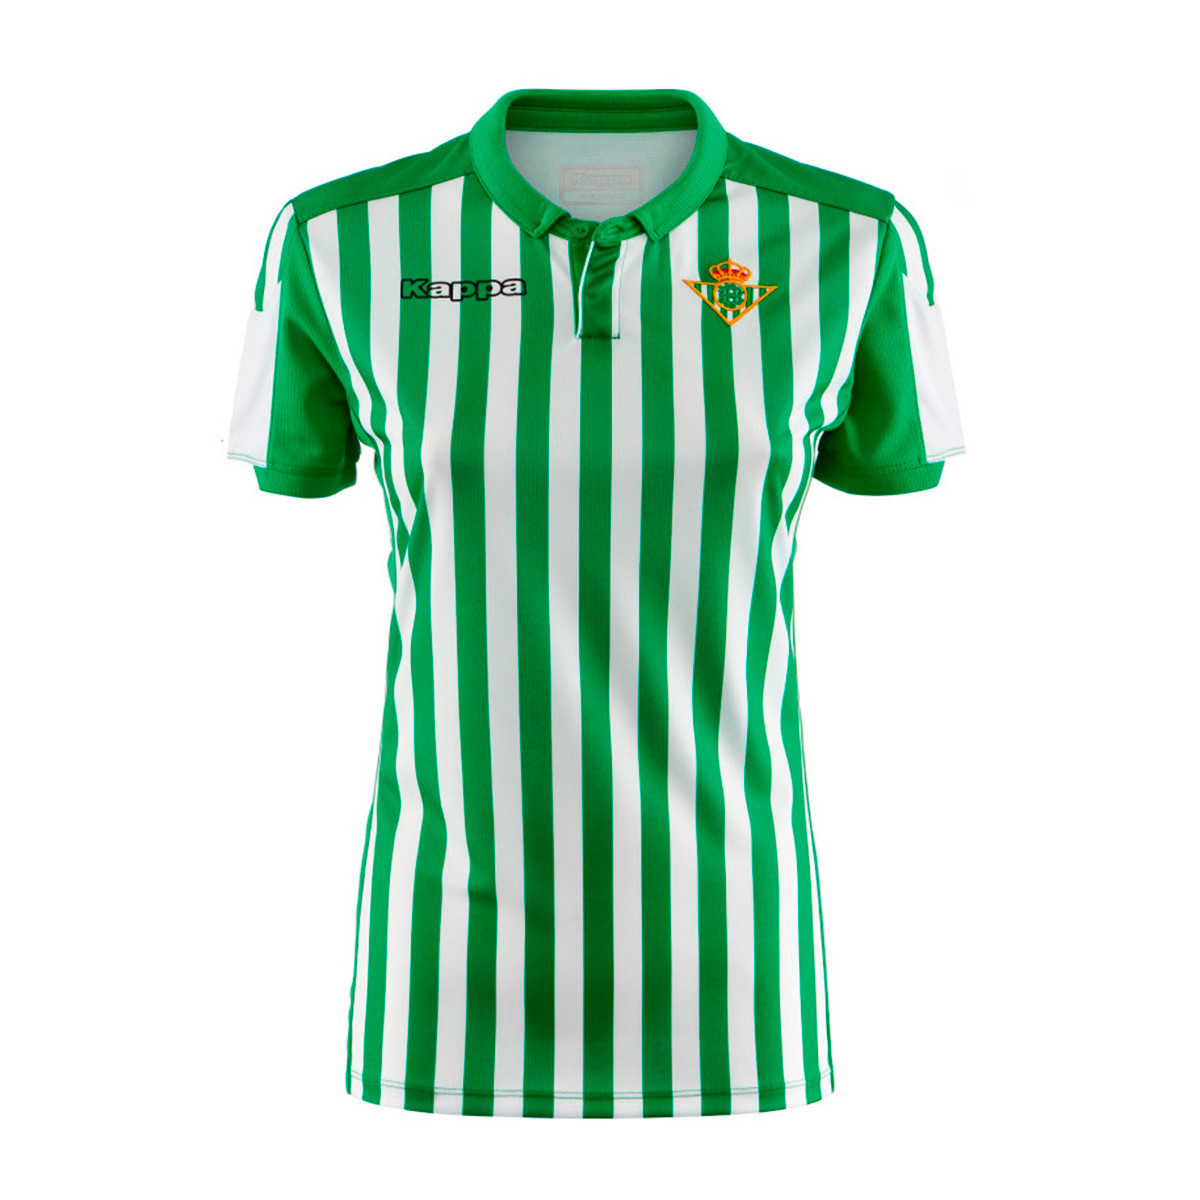 70fd8131 Jersey Kappa Woman Real Betis Balompie 2019-2020 Home White-Green -  Football store Fútbol Emotion